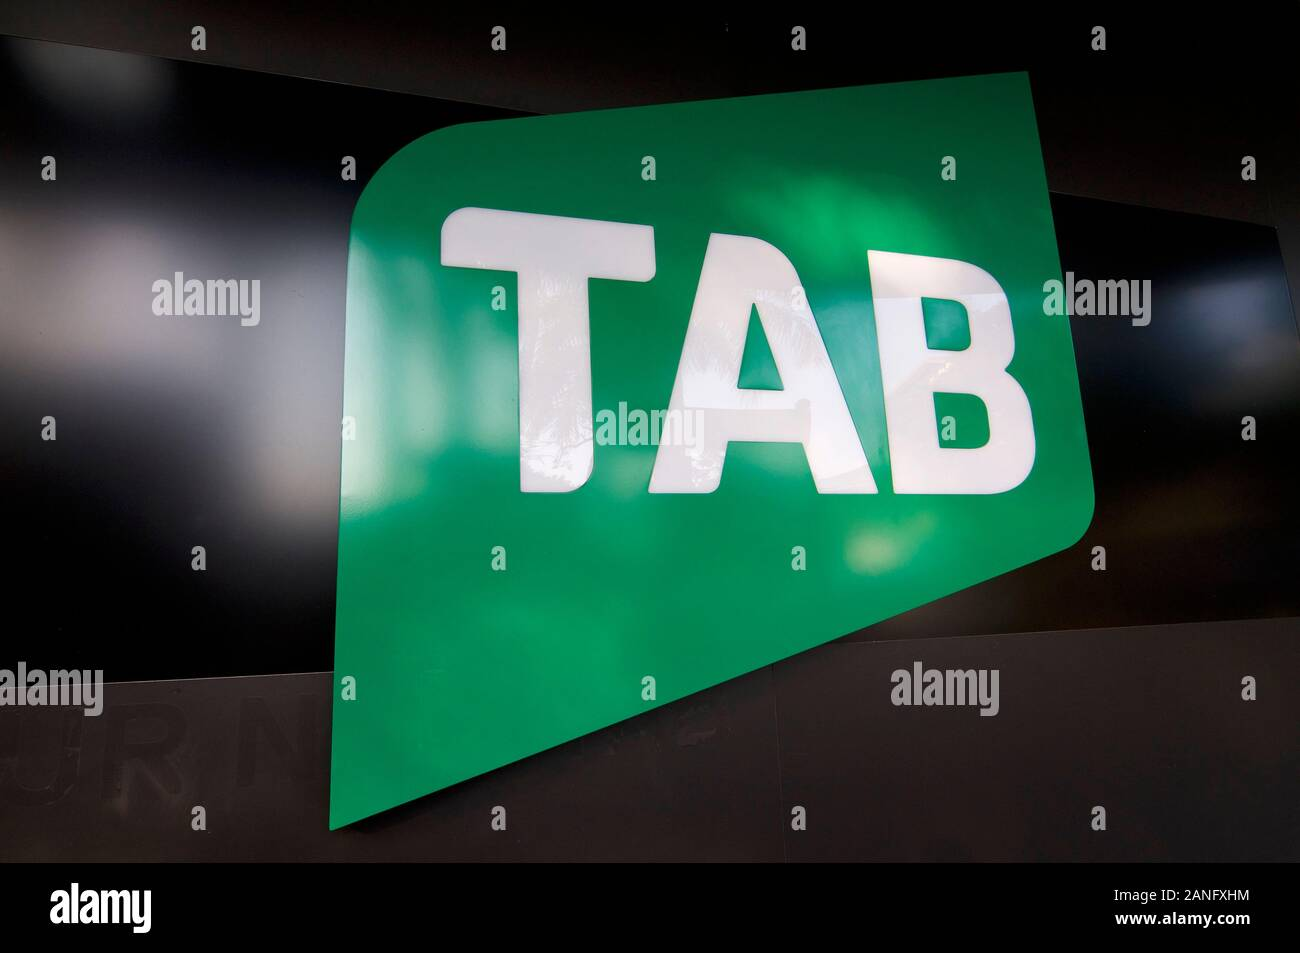 Tab online betting qld stock florida state oregon betting line